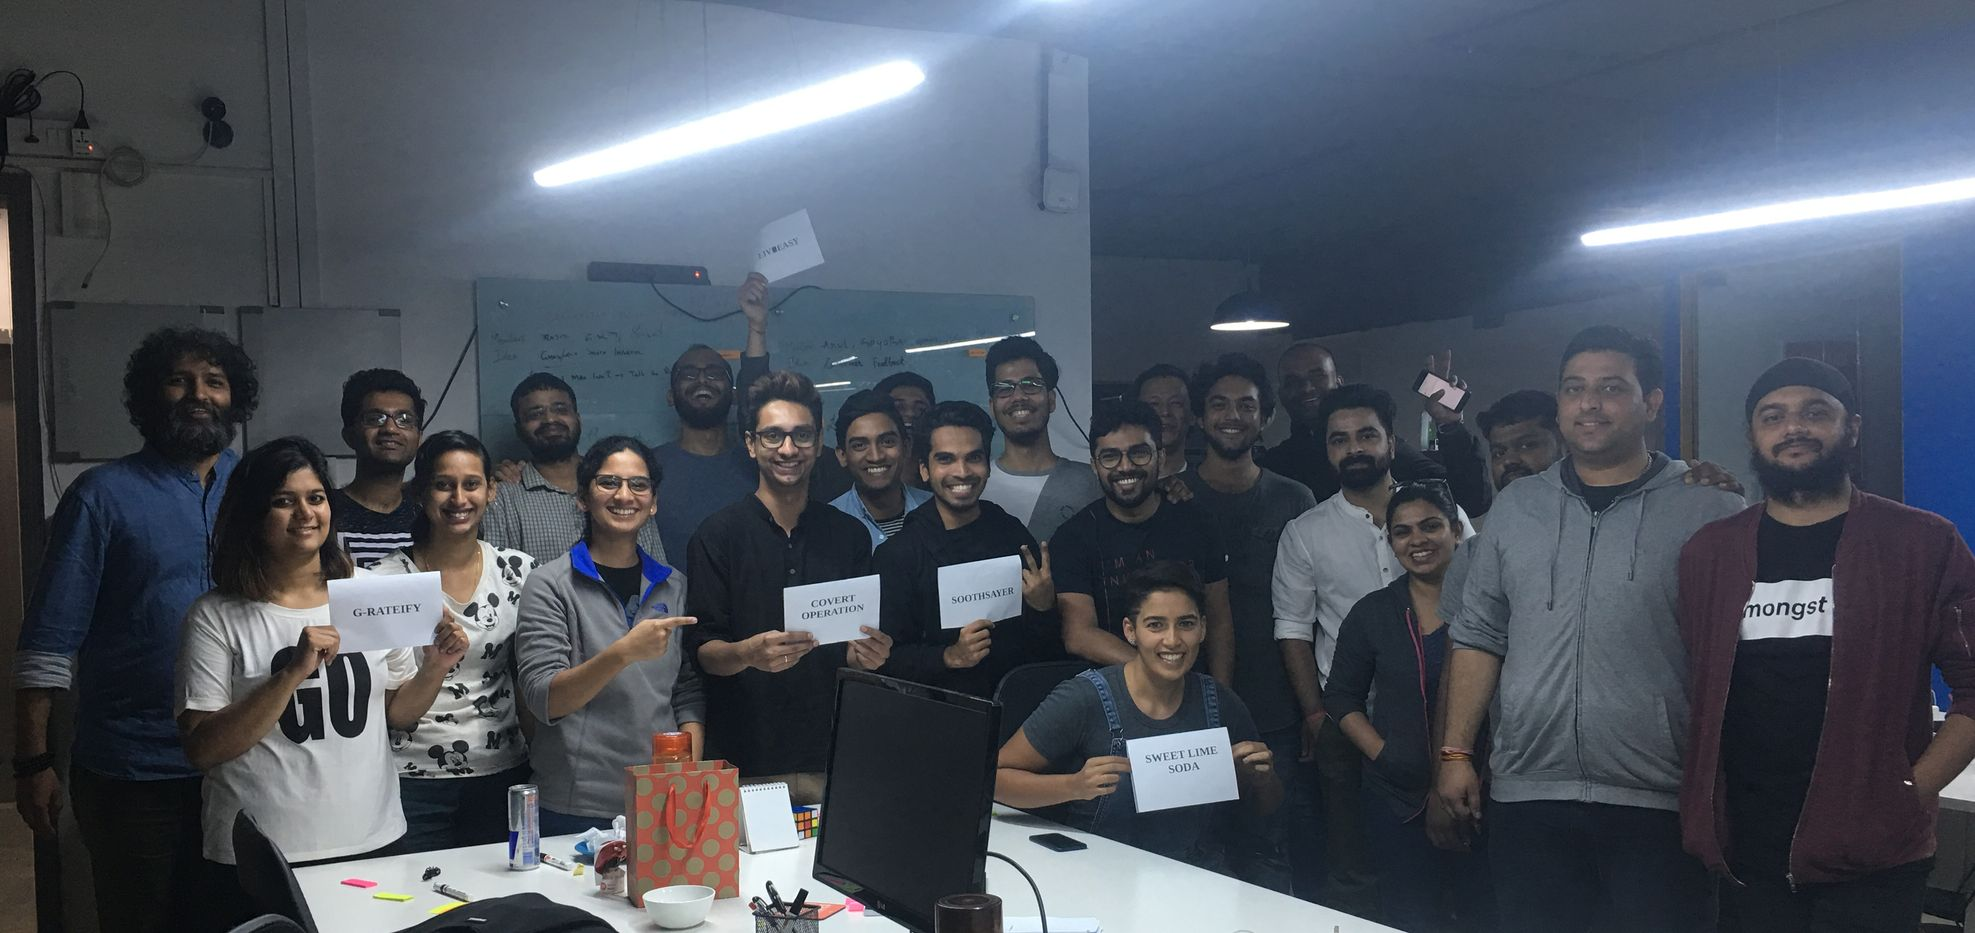 12-hours-down-we-saw-teams-present-their-projects-showcasing-a-wide-range-of-hacks